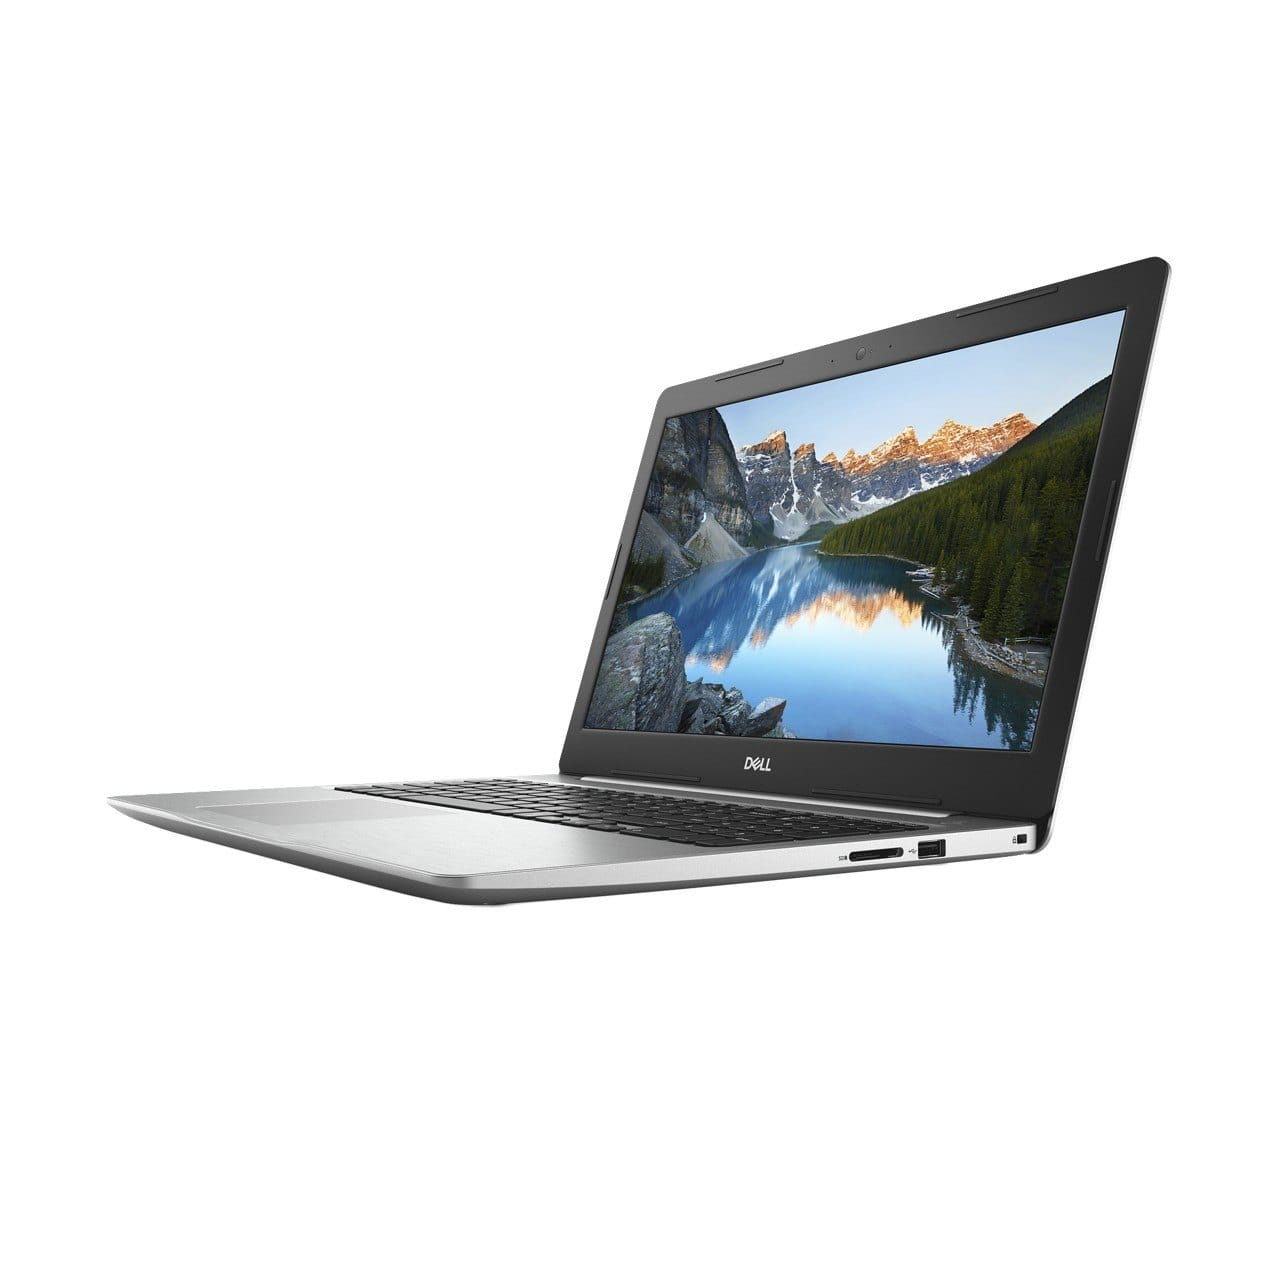 Dell Inspiron 15 Laptop: 15.6'' 1080p, i7-8550U, 8GB DDR4, 128GB SSD + 1TB HDD, Win10 & More $577 + free s/h